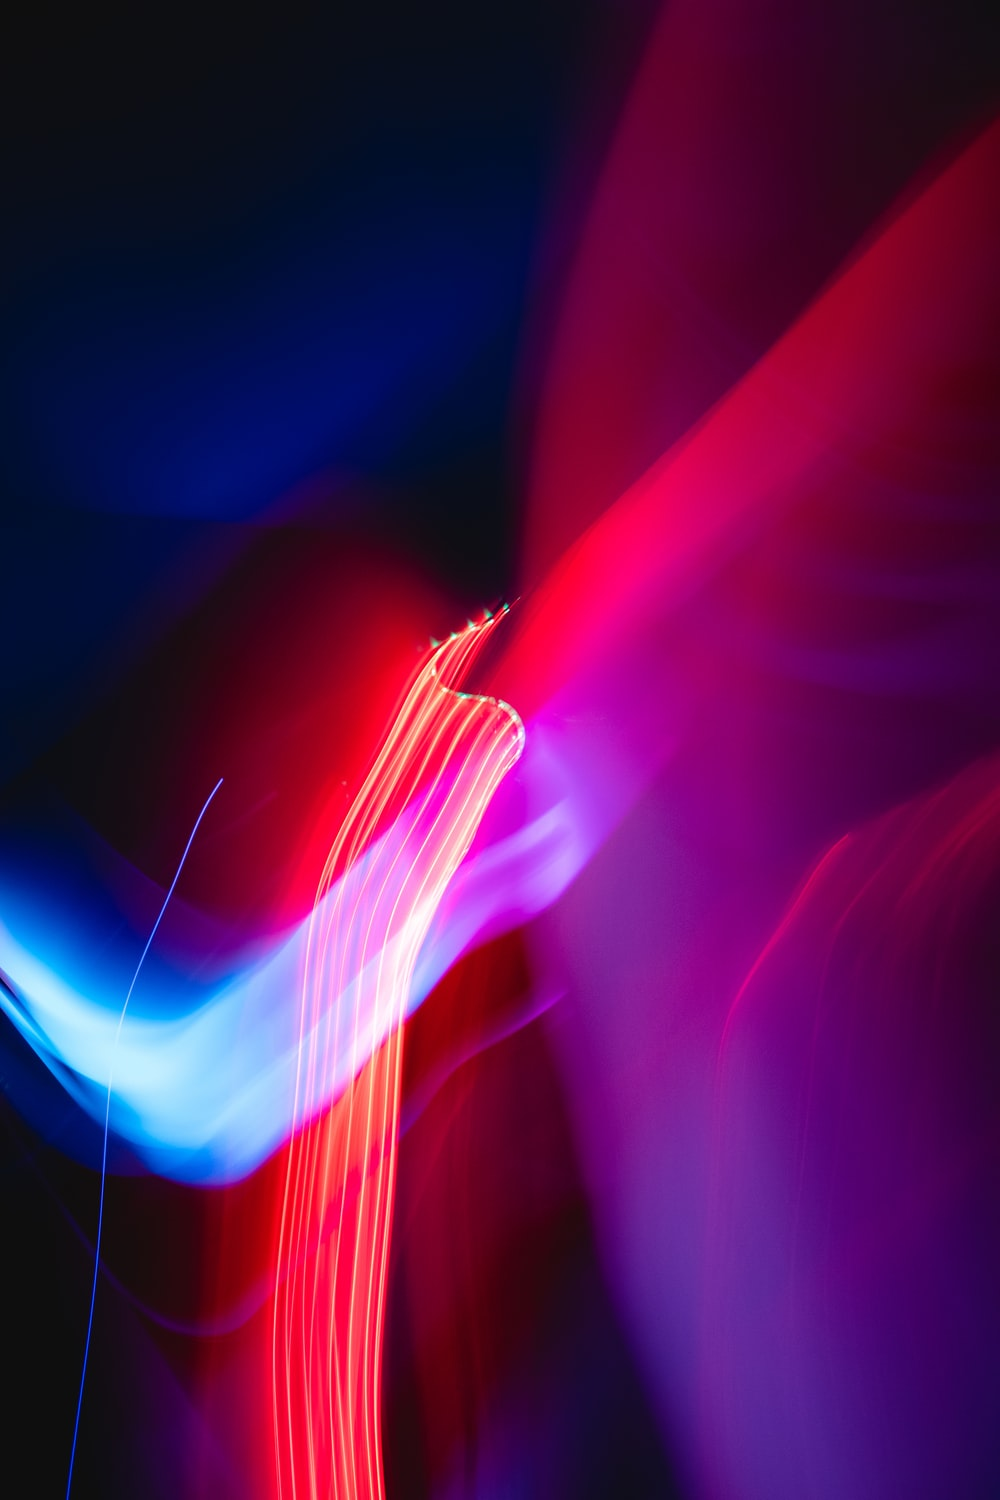 Neon Wallpapers Free Hd Download 500 Hq Unsplash